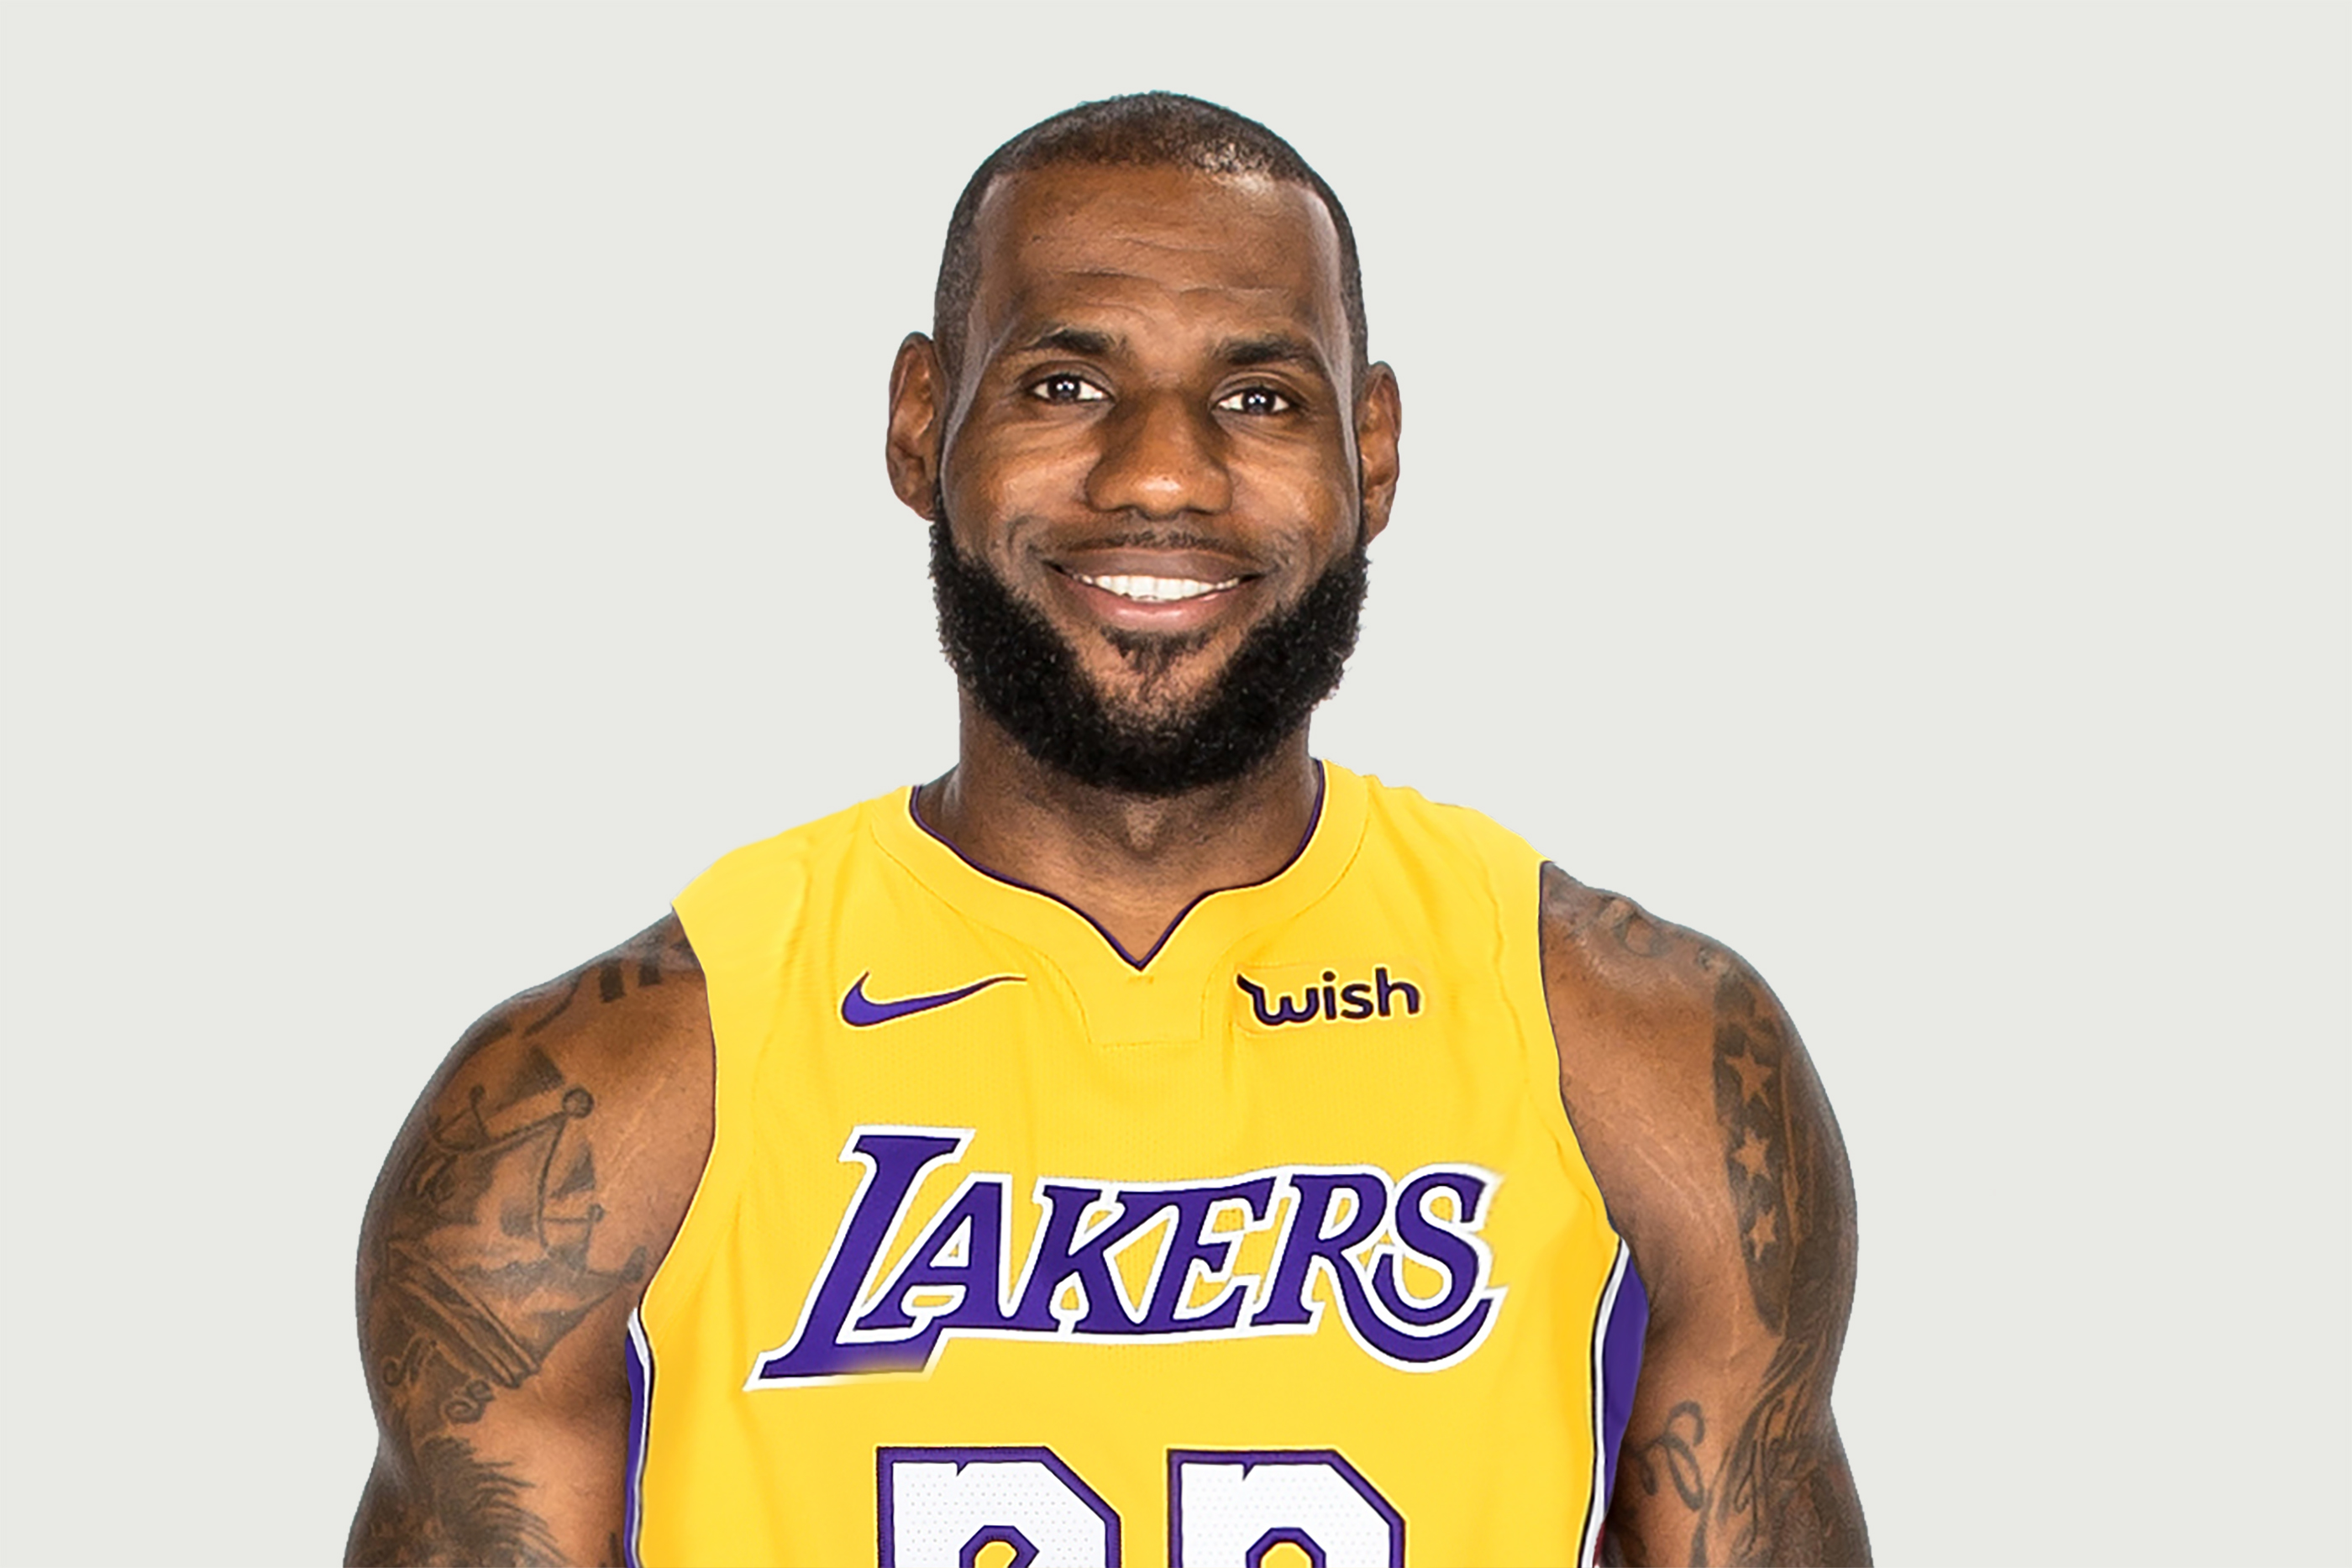 Lebron James Net Worth How Much Does He Make Money